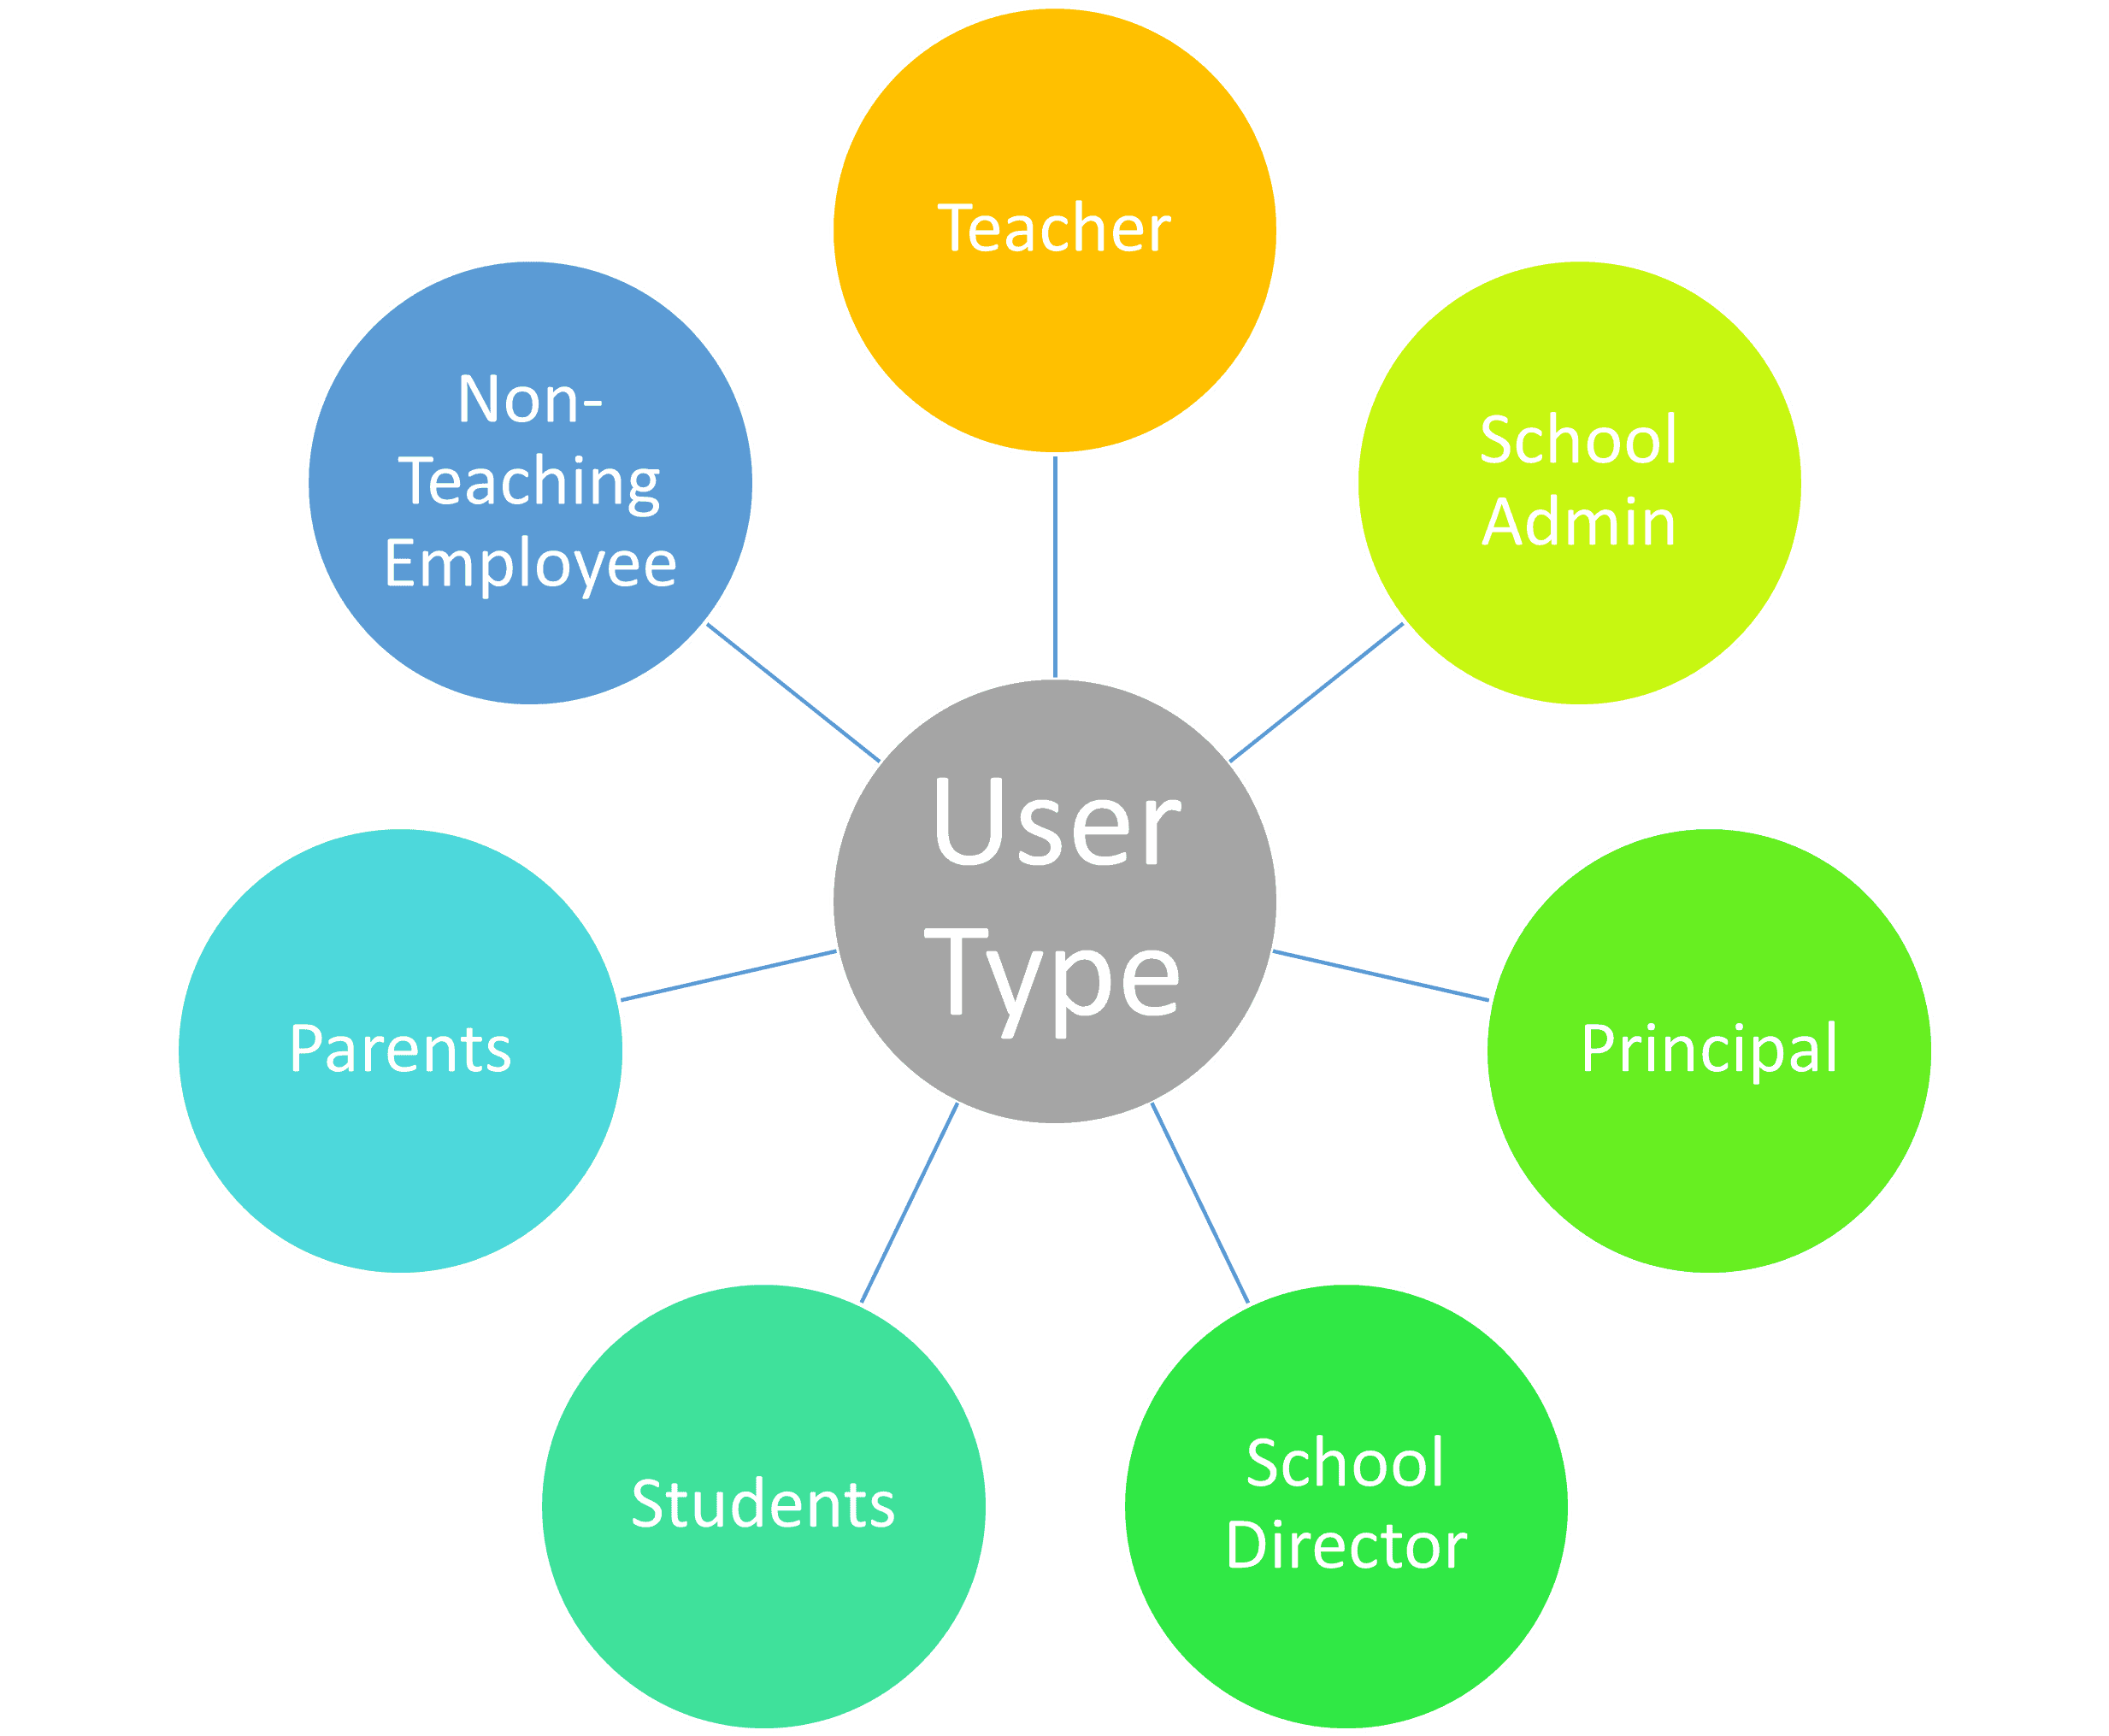 School management software users